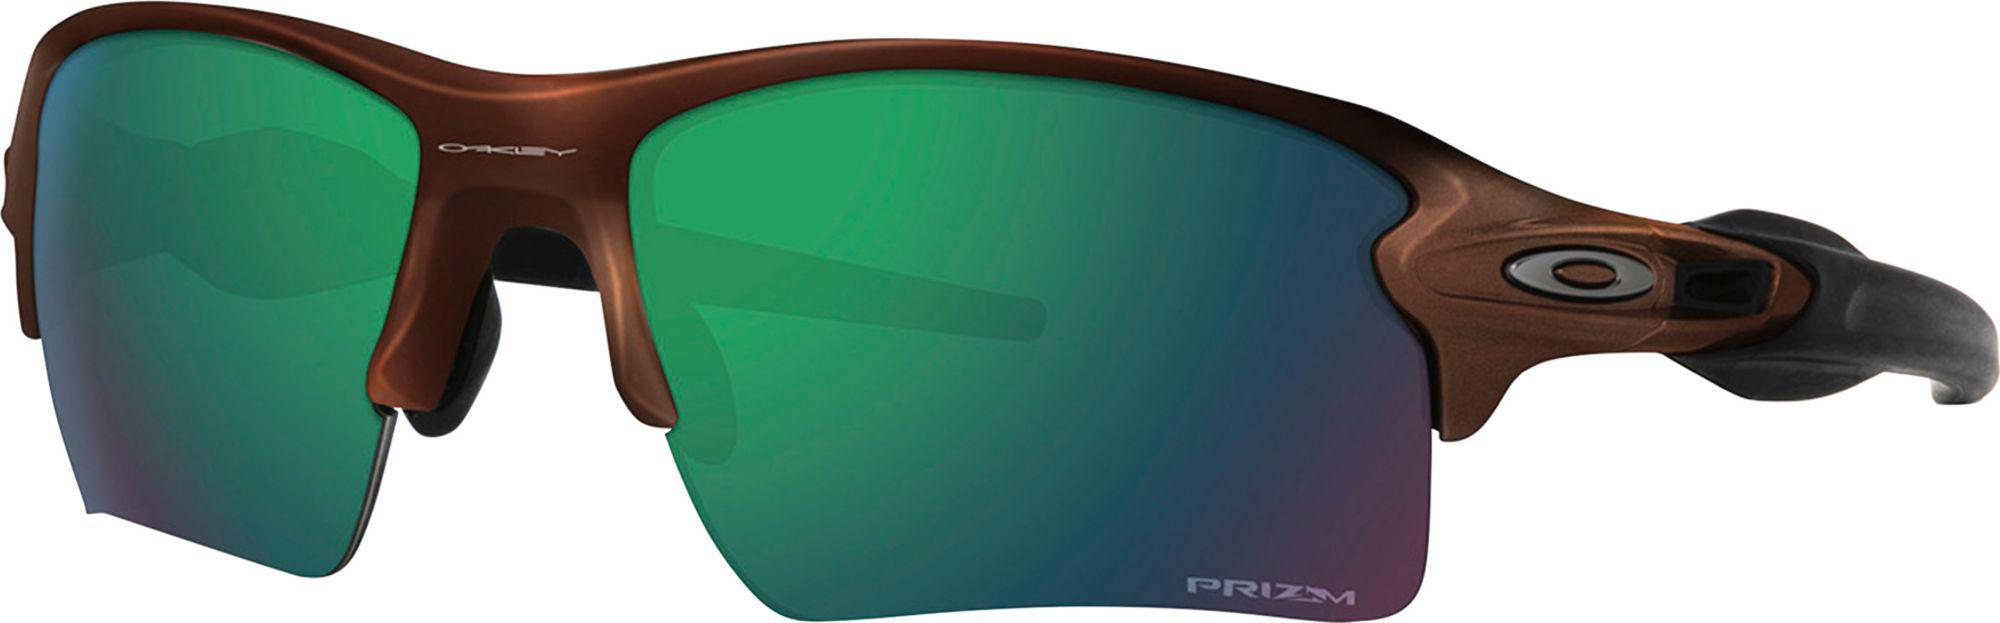 509f8257e8a Lyst - Oakley Flak 2.0 Xl Prizm Shallow Water Polarized Sunglasses ...